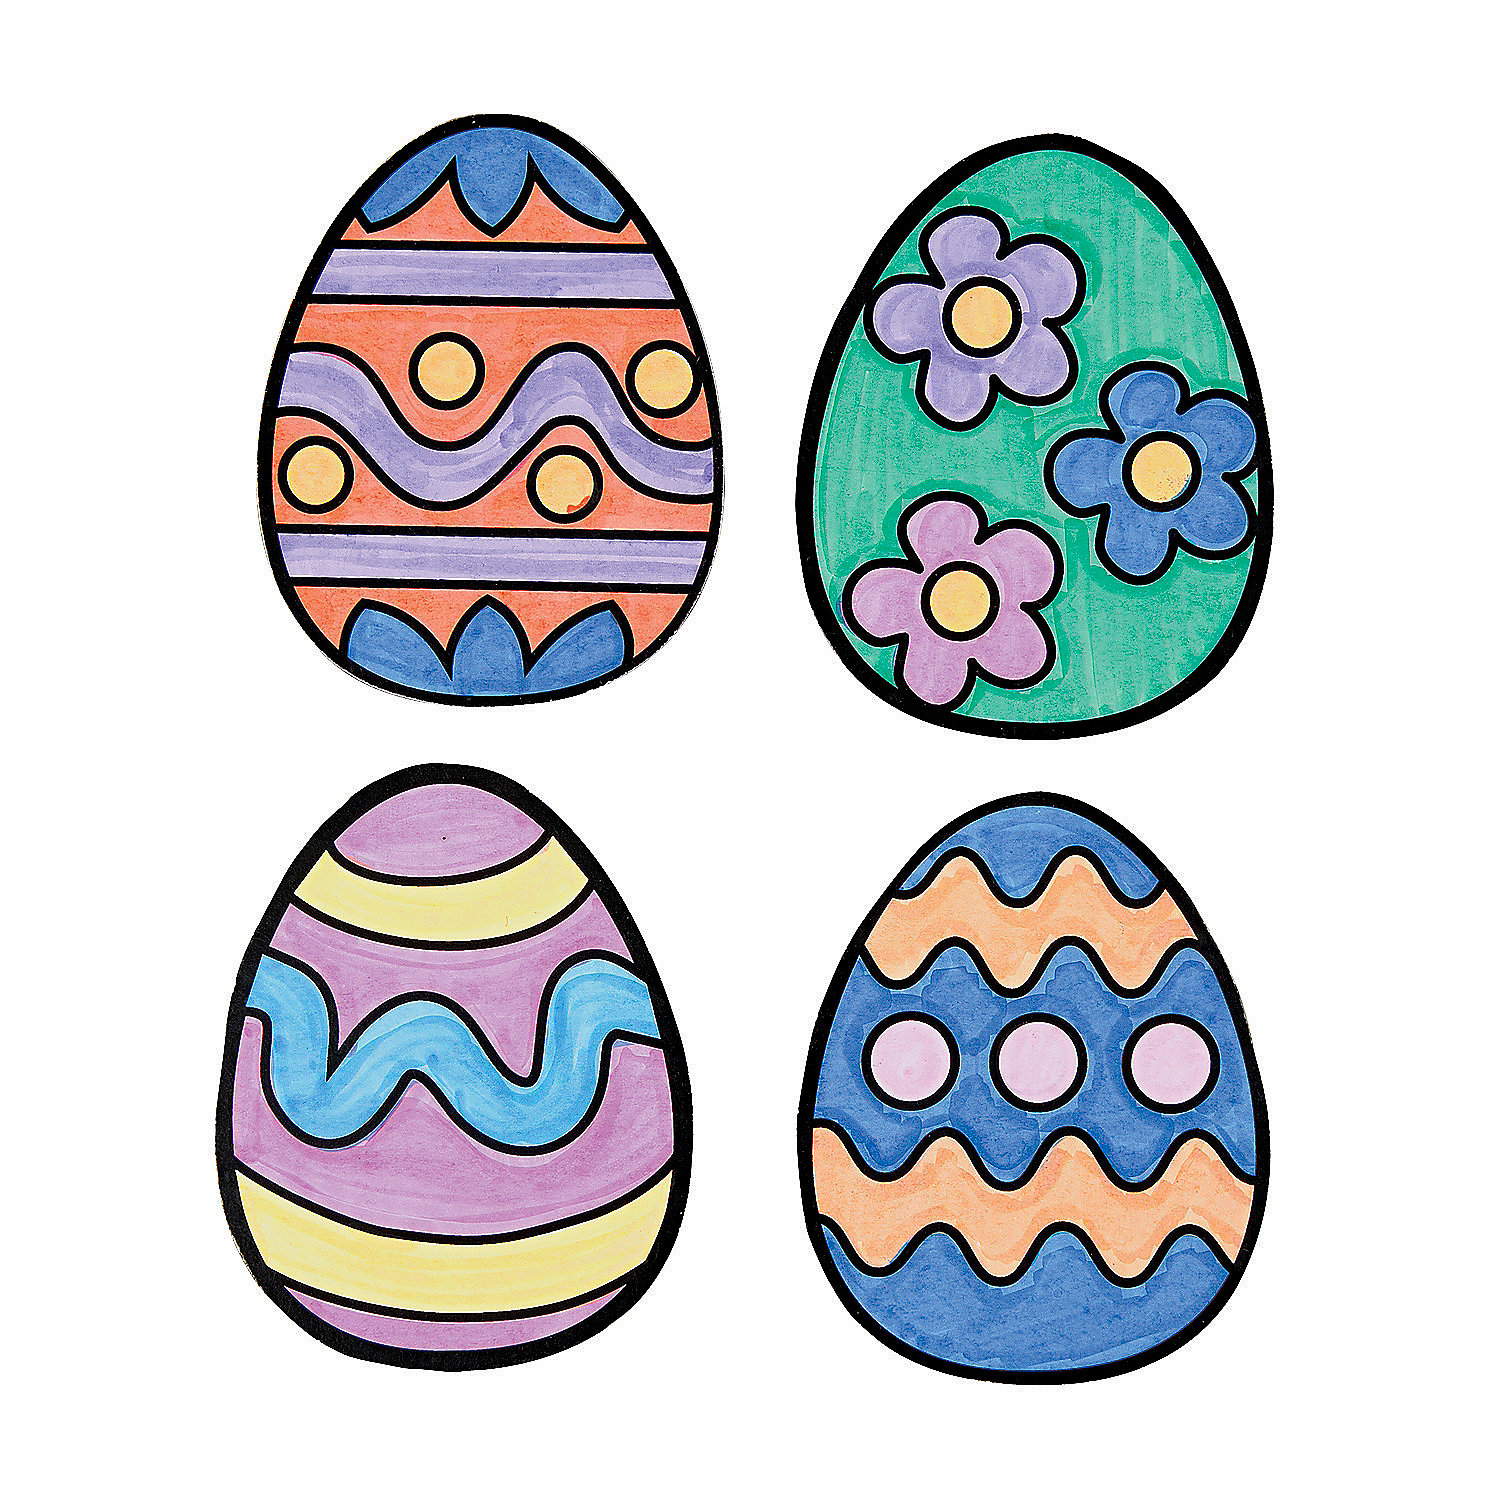 Fun Express - Cyo Easter Egg Magnets for Easter - Craft Kits - CYO - Paper - Stationery - Easter - 12 Pieces